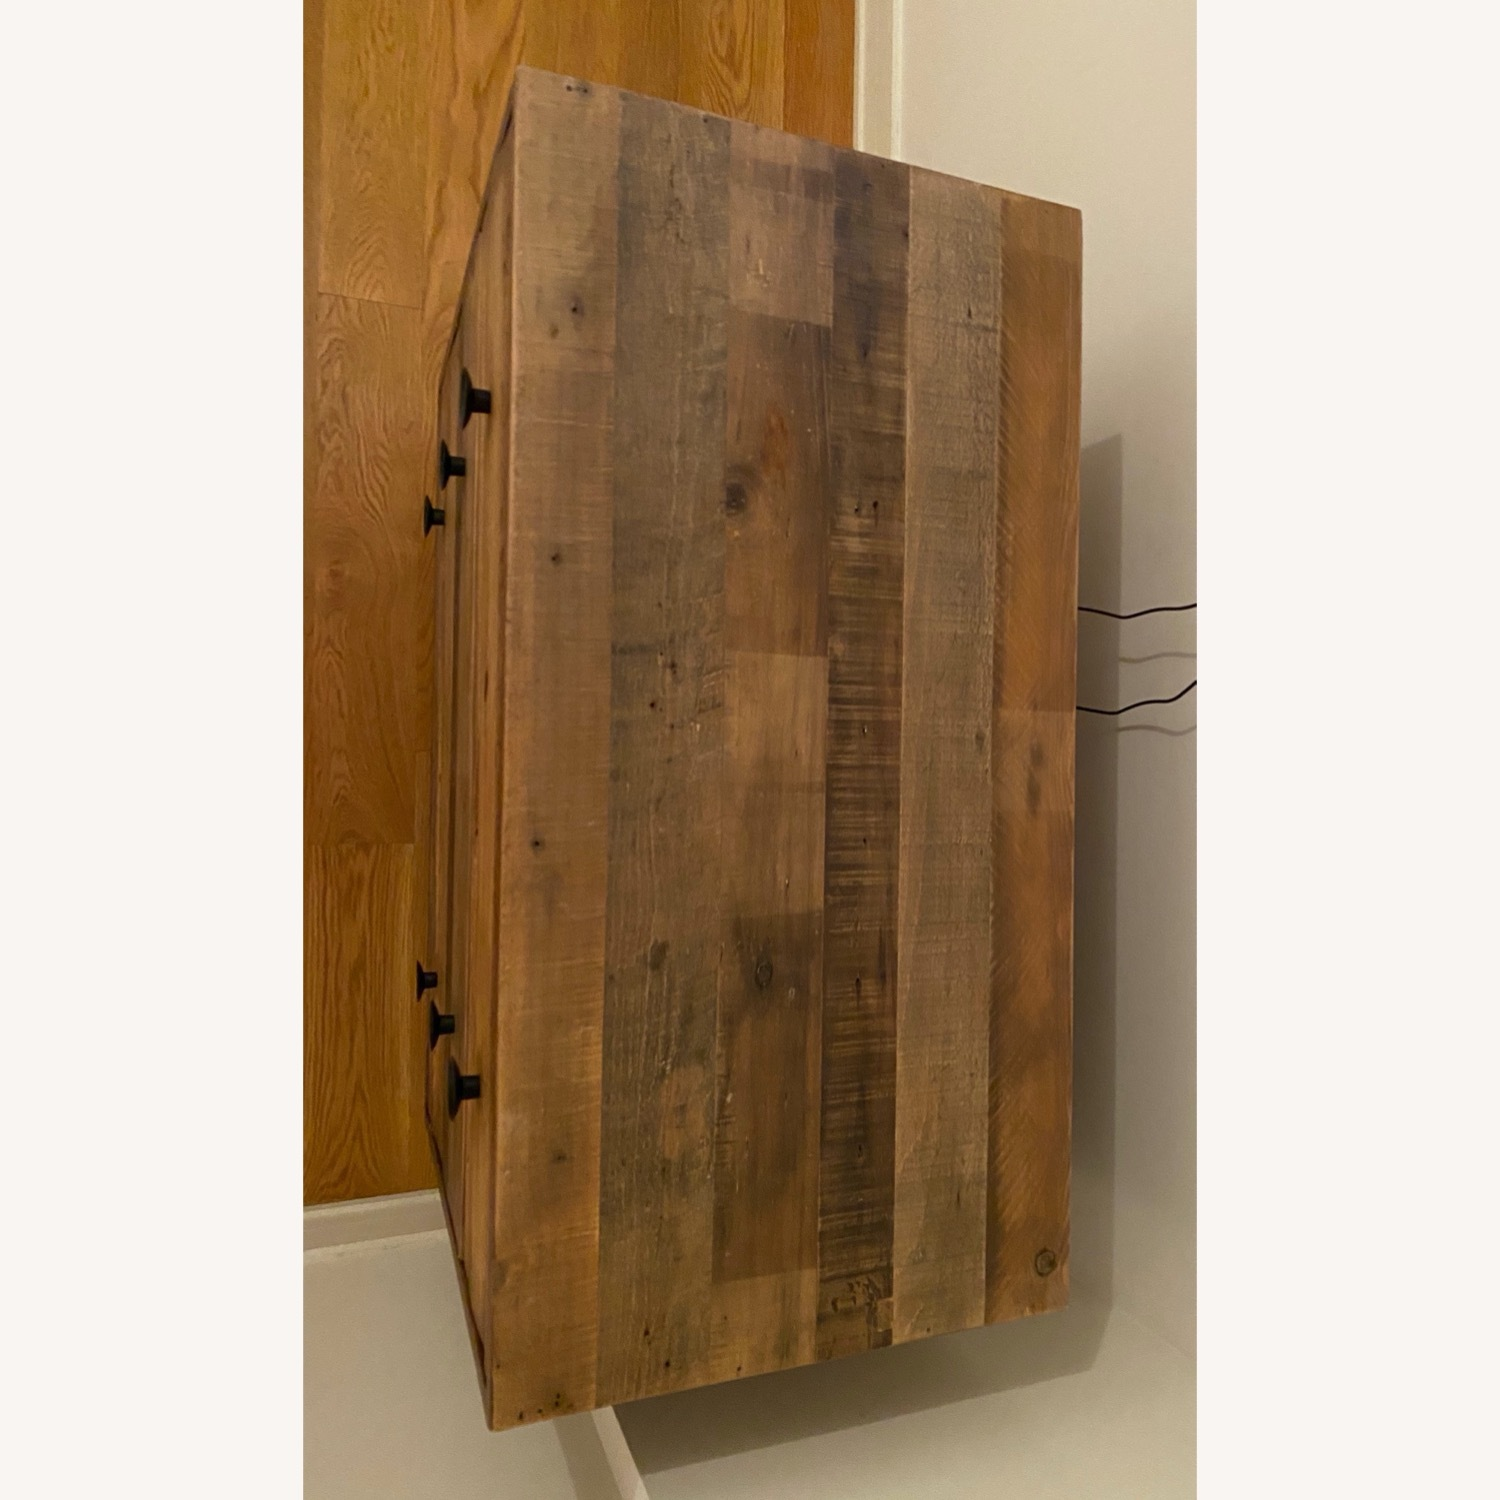 West Elm Reclaimed Wood 3-Drawer Dresser - image-4